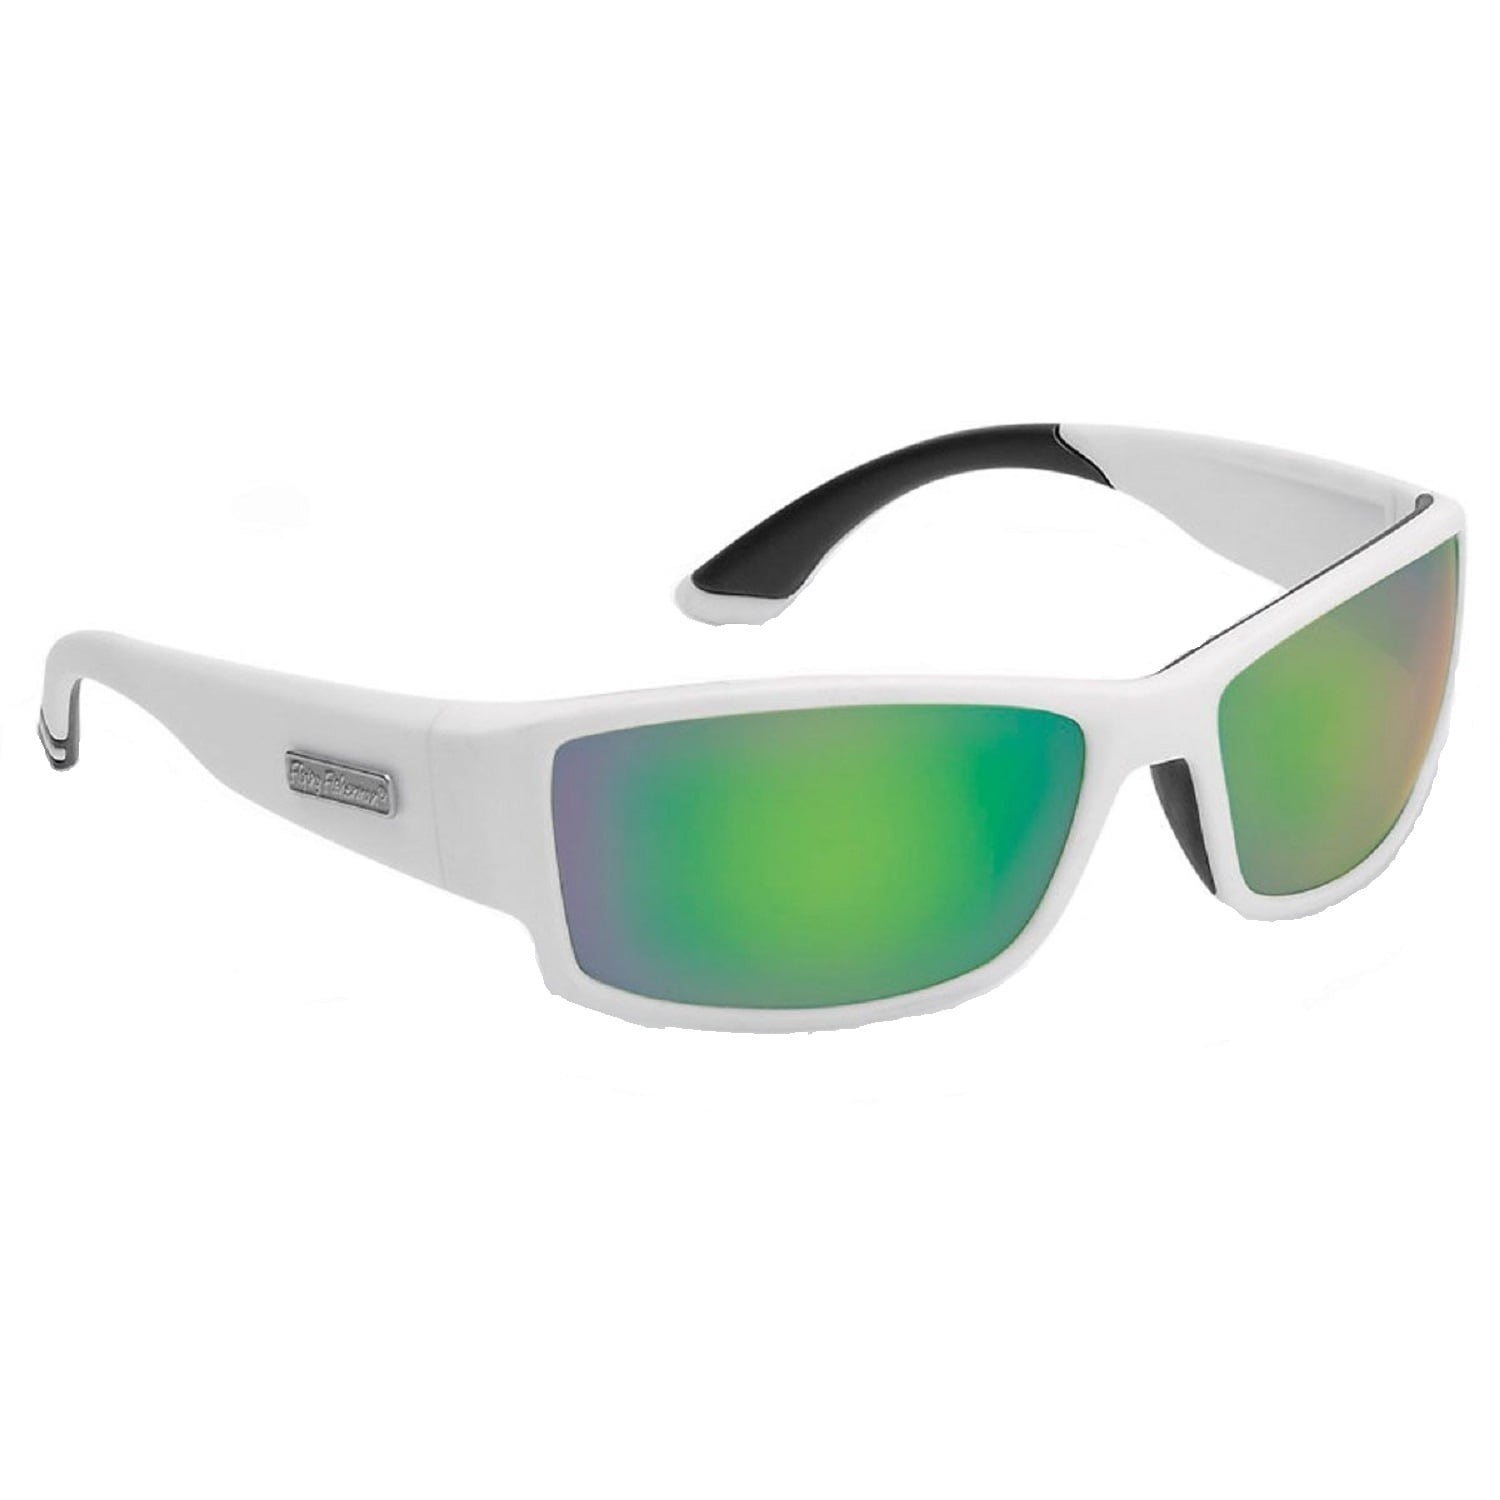 5aa0fb6469db Shop Flying Fisherman Razor Sunglasses - Free Shipping On Orders Over $45 -  Overstock.com - 10807919